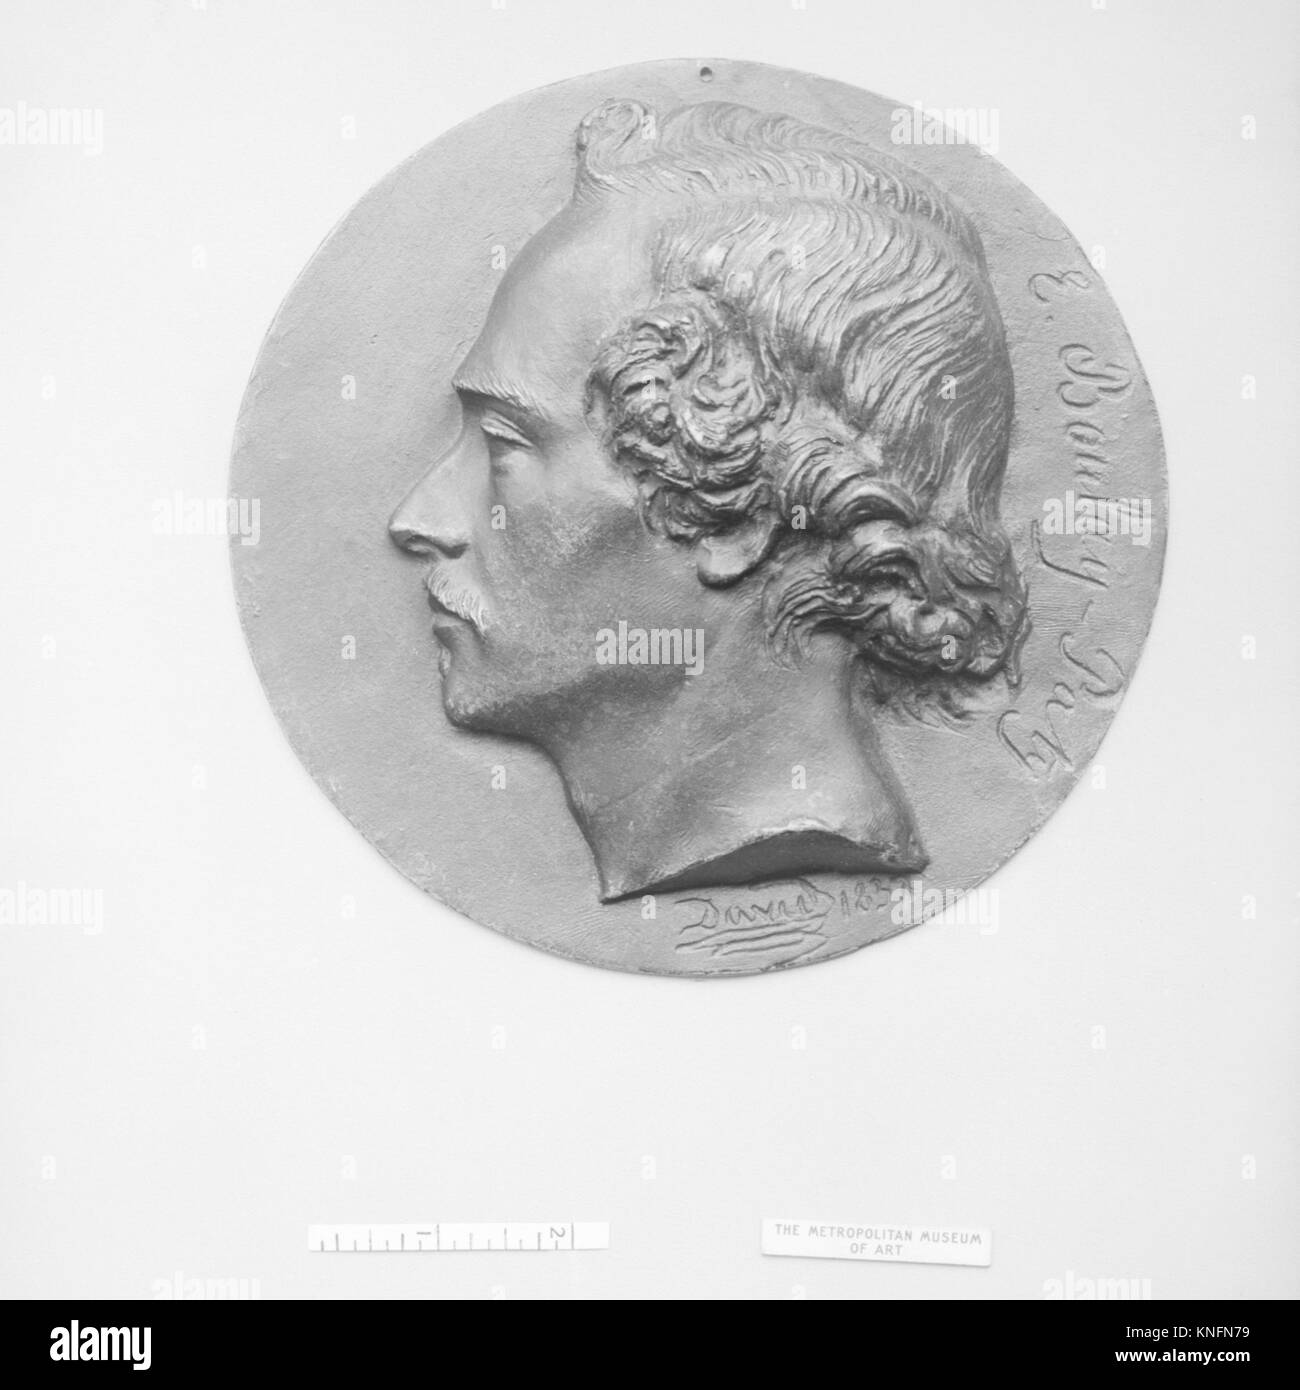 Evariste Boulay-Paty (1804 1864), French poet MET 31557 188469 Artist: Pierre Jean David d'Angers, French, Angers Stock Photo